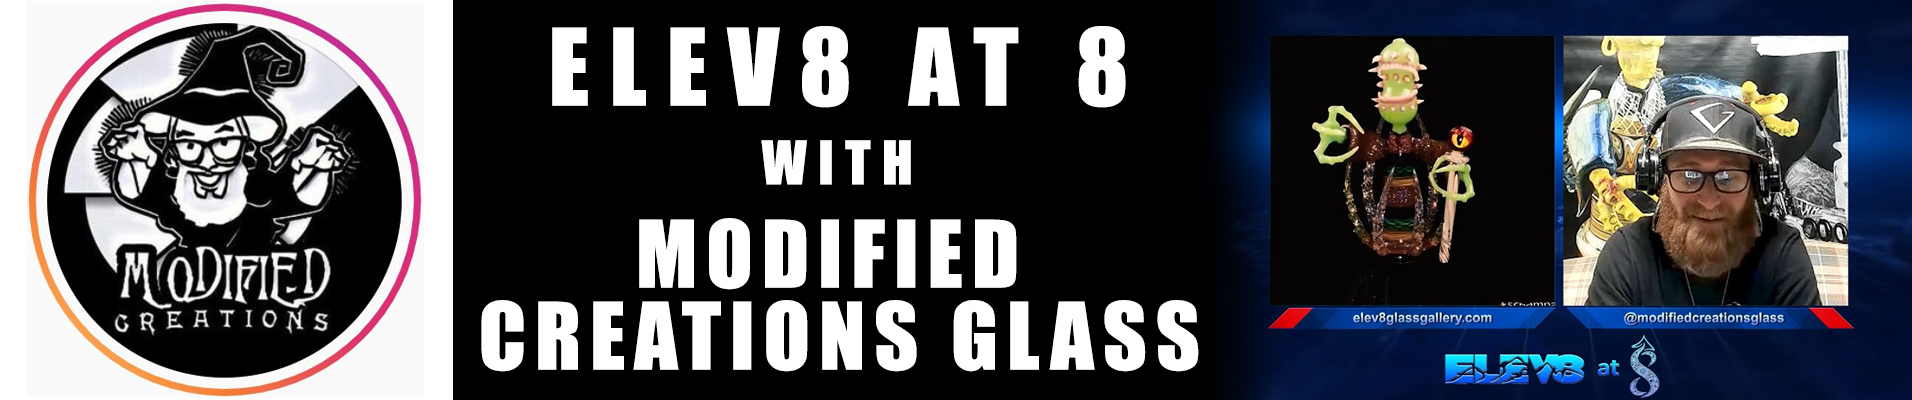 modified-creations-glass-banner.jpg